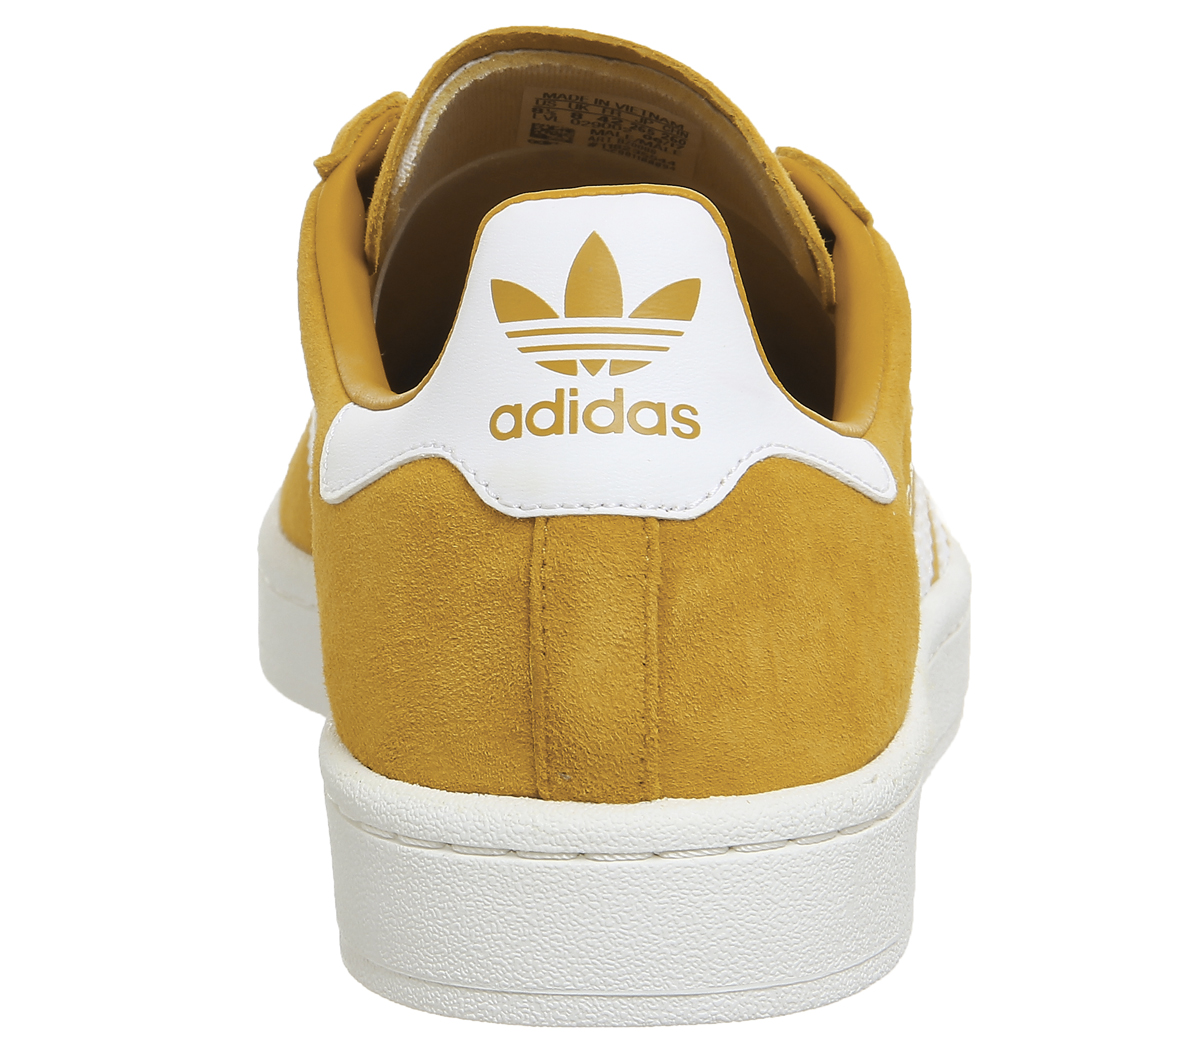 76fd17ae364 Adidas-Campus-Trainers-TACTILE-YELLOW-WHITE-Trainers-Shoes thumbnail